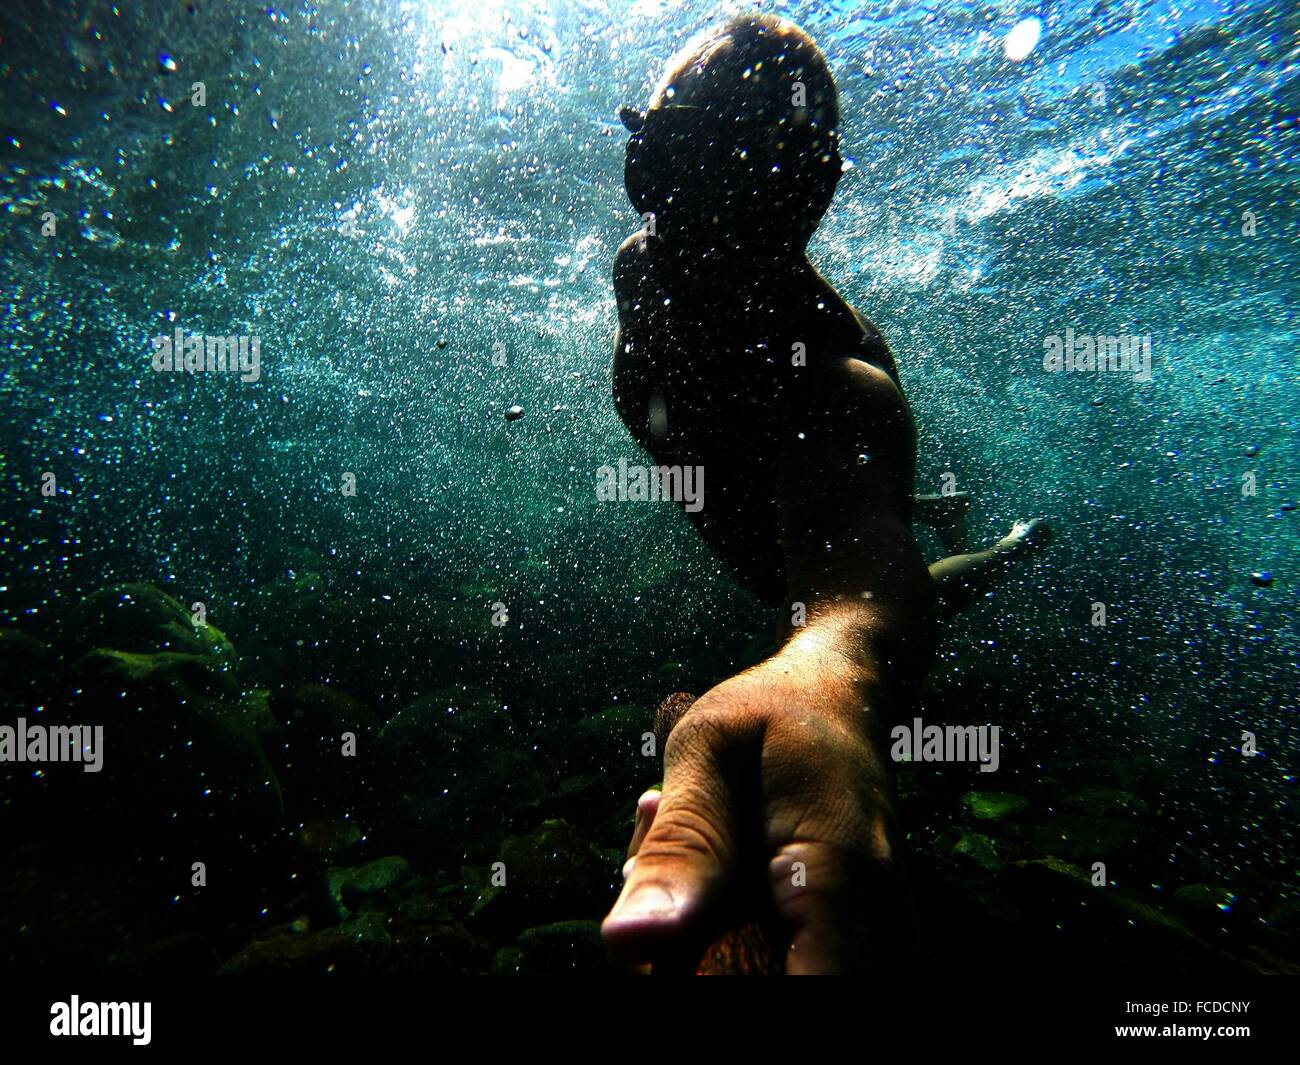 Man Swimming In Sea - Stock Image